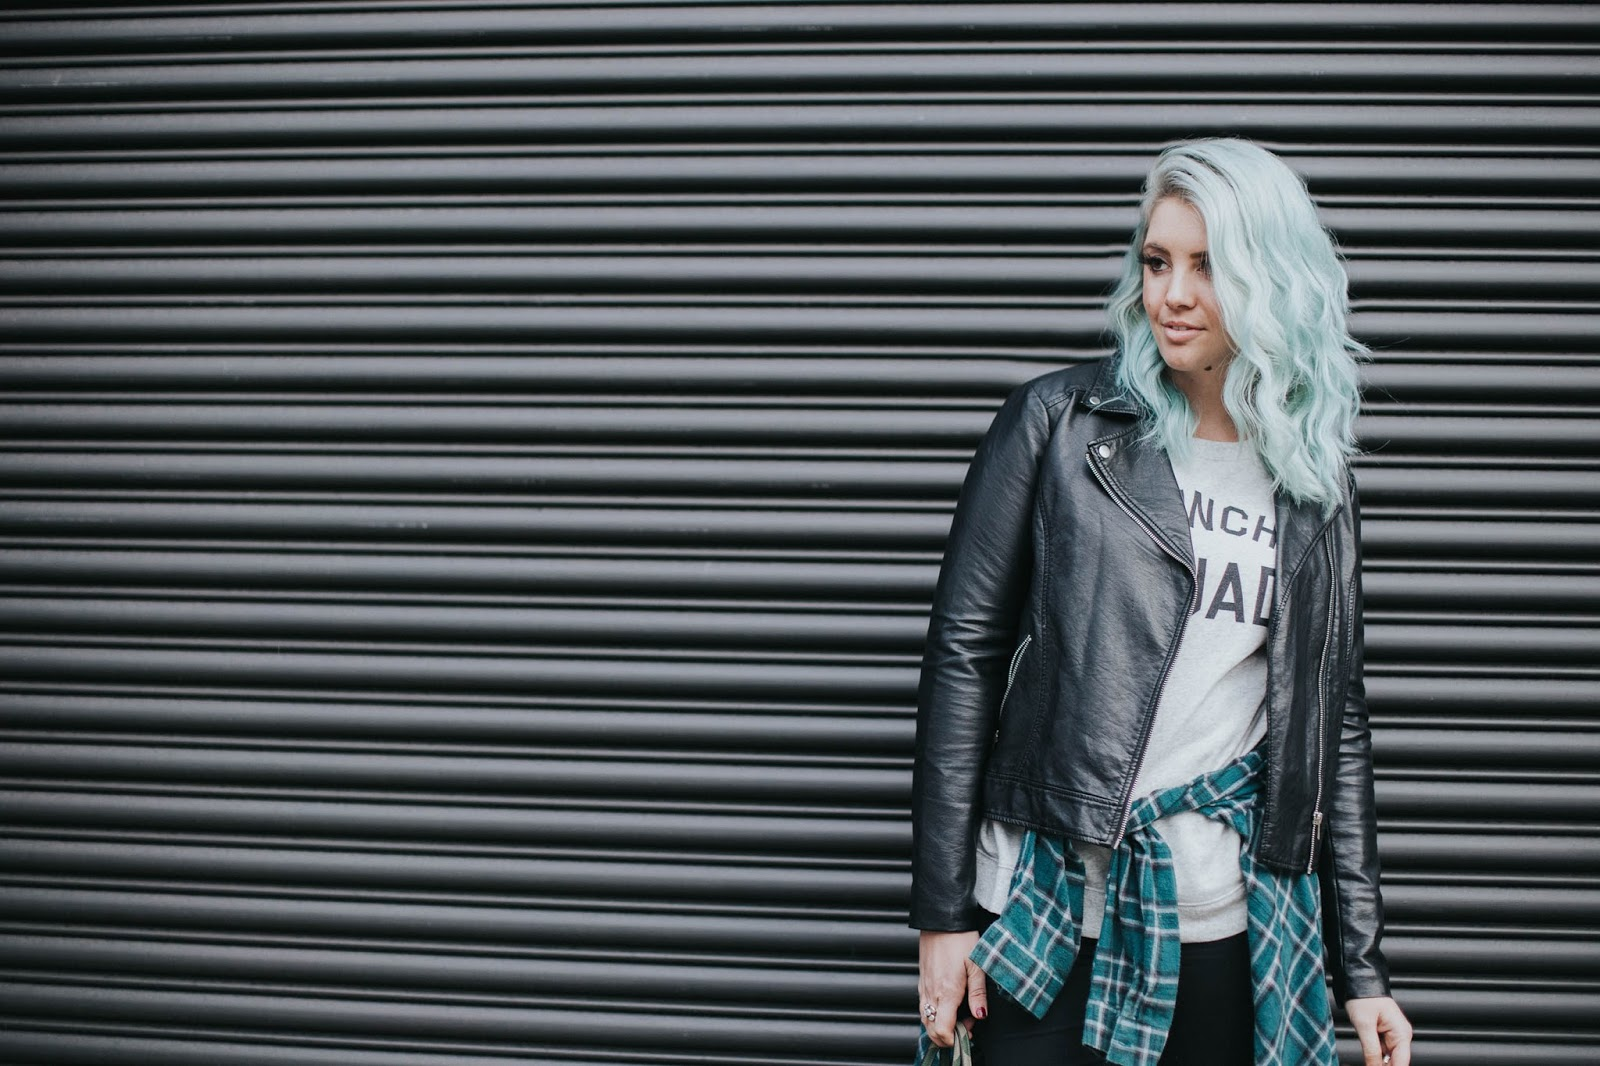 Blue Hair, Black Jacket, Portland